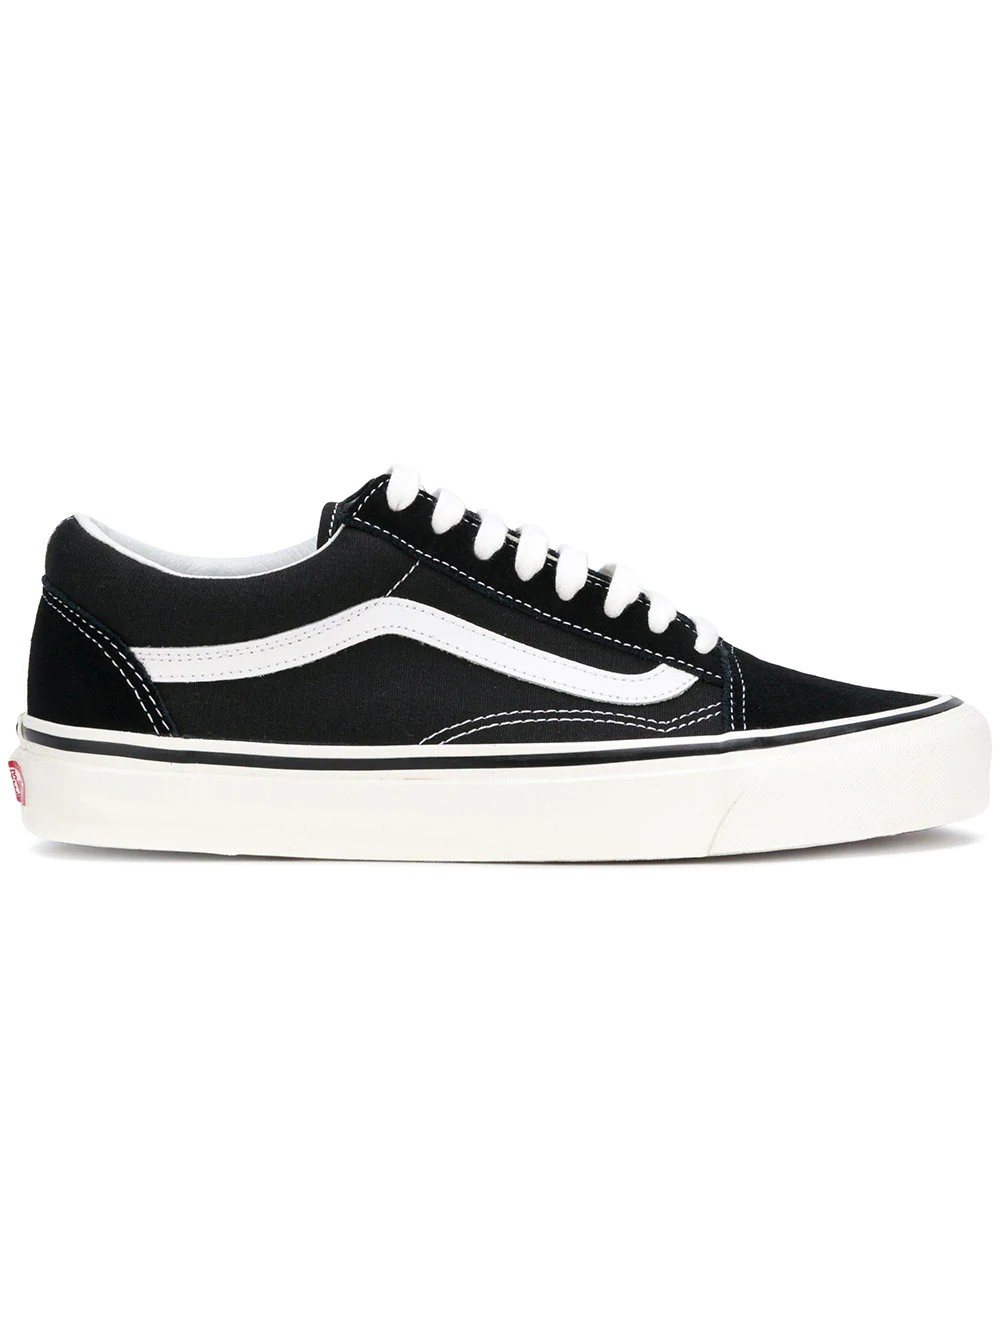 Vans Old Skool 36 DX | Noir | Sneakers | VA38G2PXC